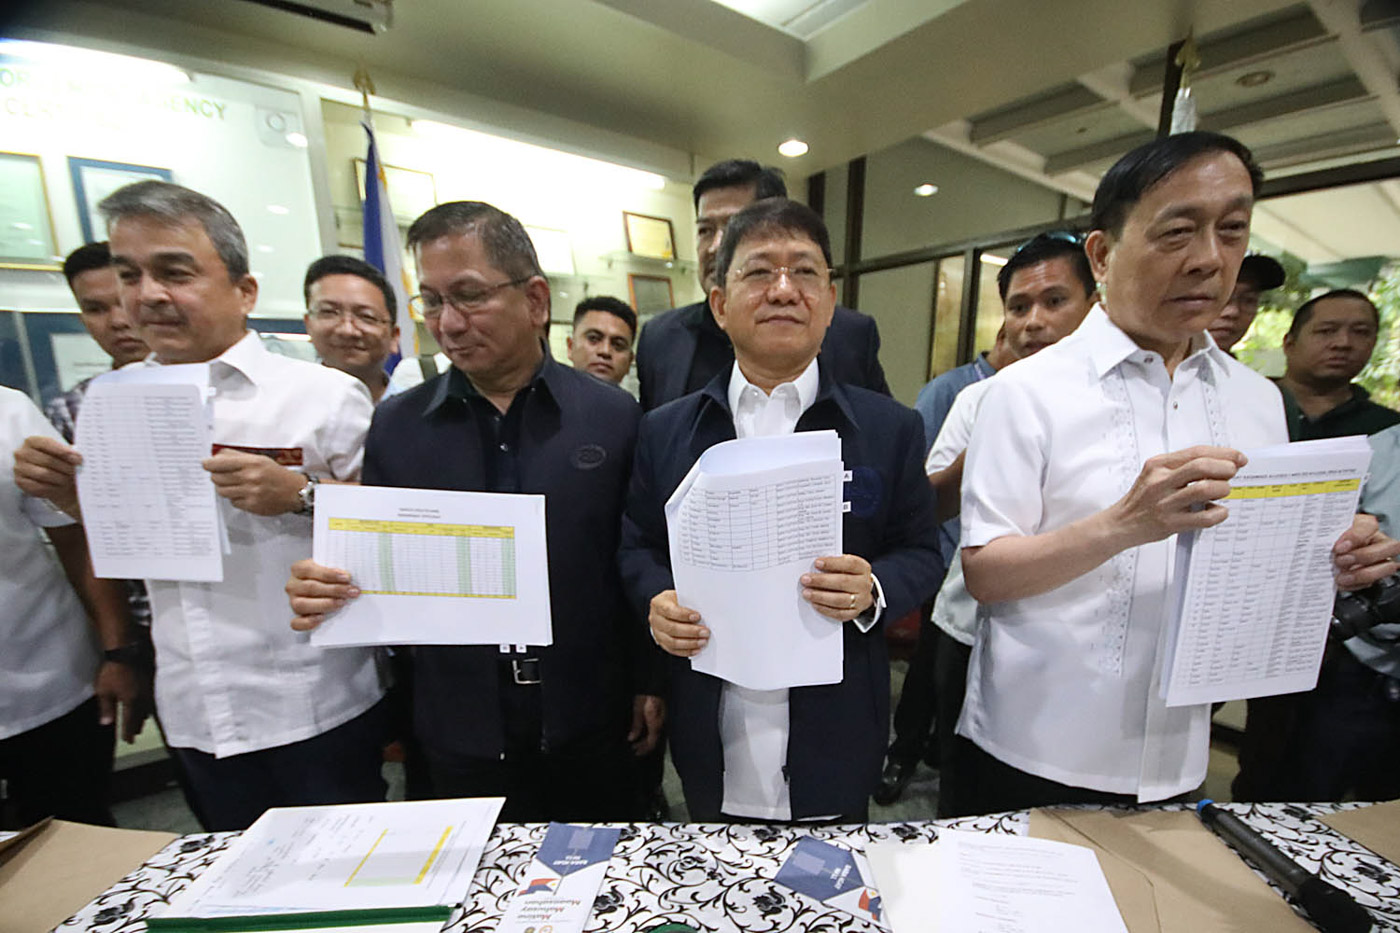 RELEASE BEFORE POLLS. Four days before the campaign period for the barangay and Sangguniang Kabataan elections, PDEA chief Director General Aaron Aquino (2nd-left), DILG Secretary Eduardo Au00f1o (2nd-right), Congressman Ace Barbers (left) and DDB Secretary Catalino Cuy (right) show a list of 207 barangay officials allegedly involved in illegal drugs. File photo by Darren Langit/Rappler